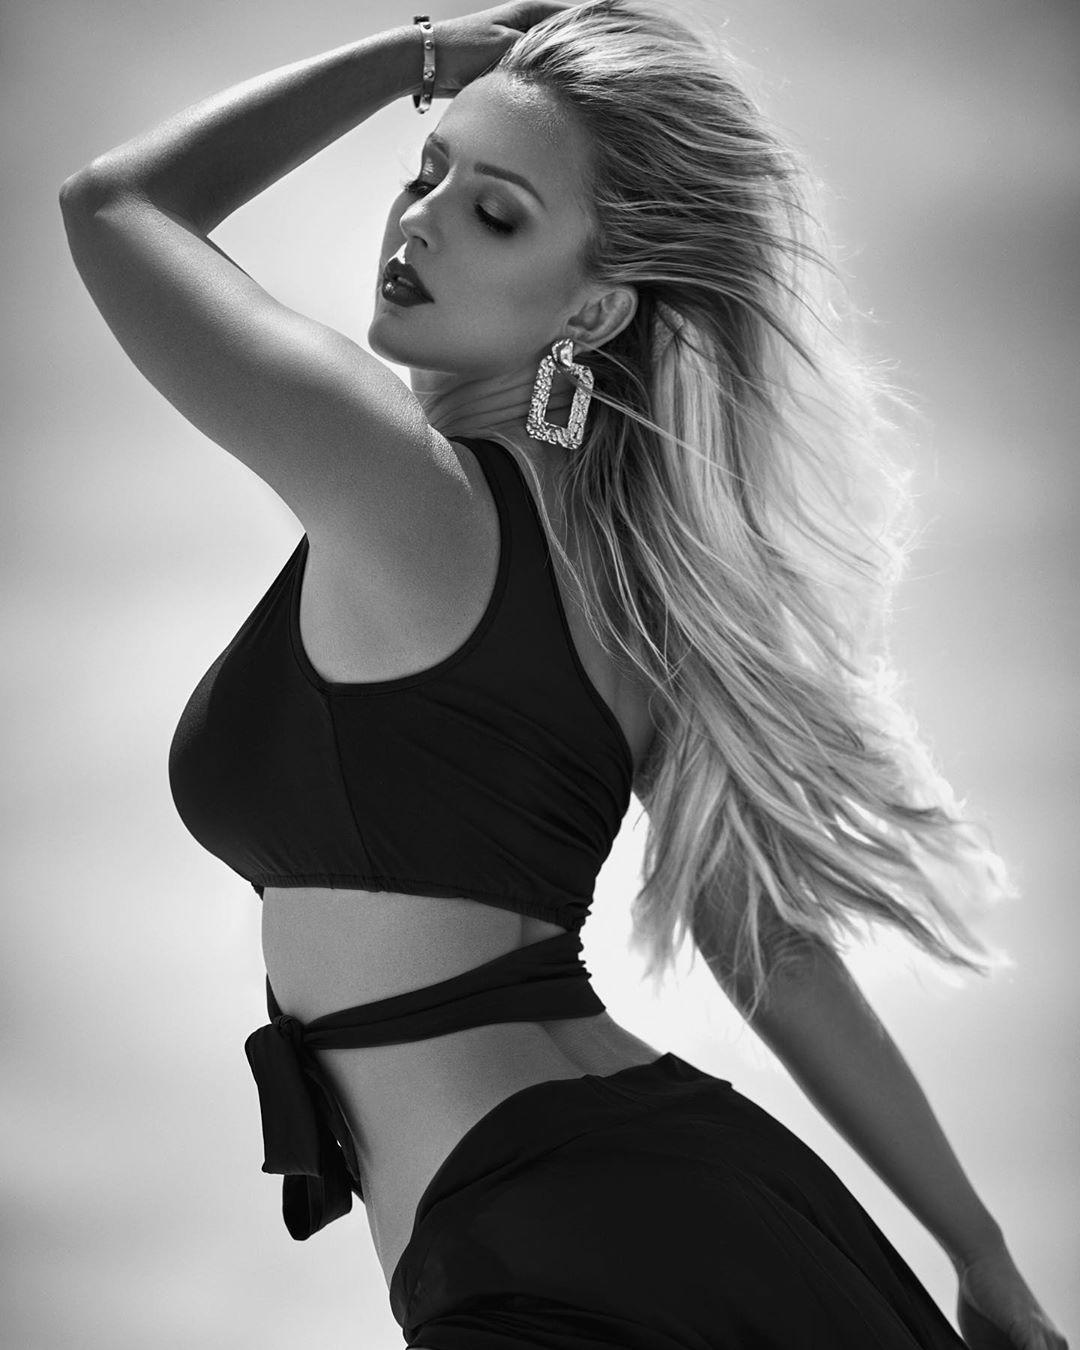 Amanda Paris Hot Pictures, Black and white, fashion model